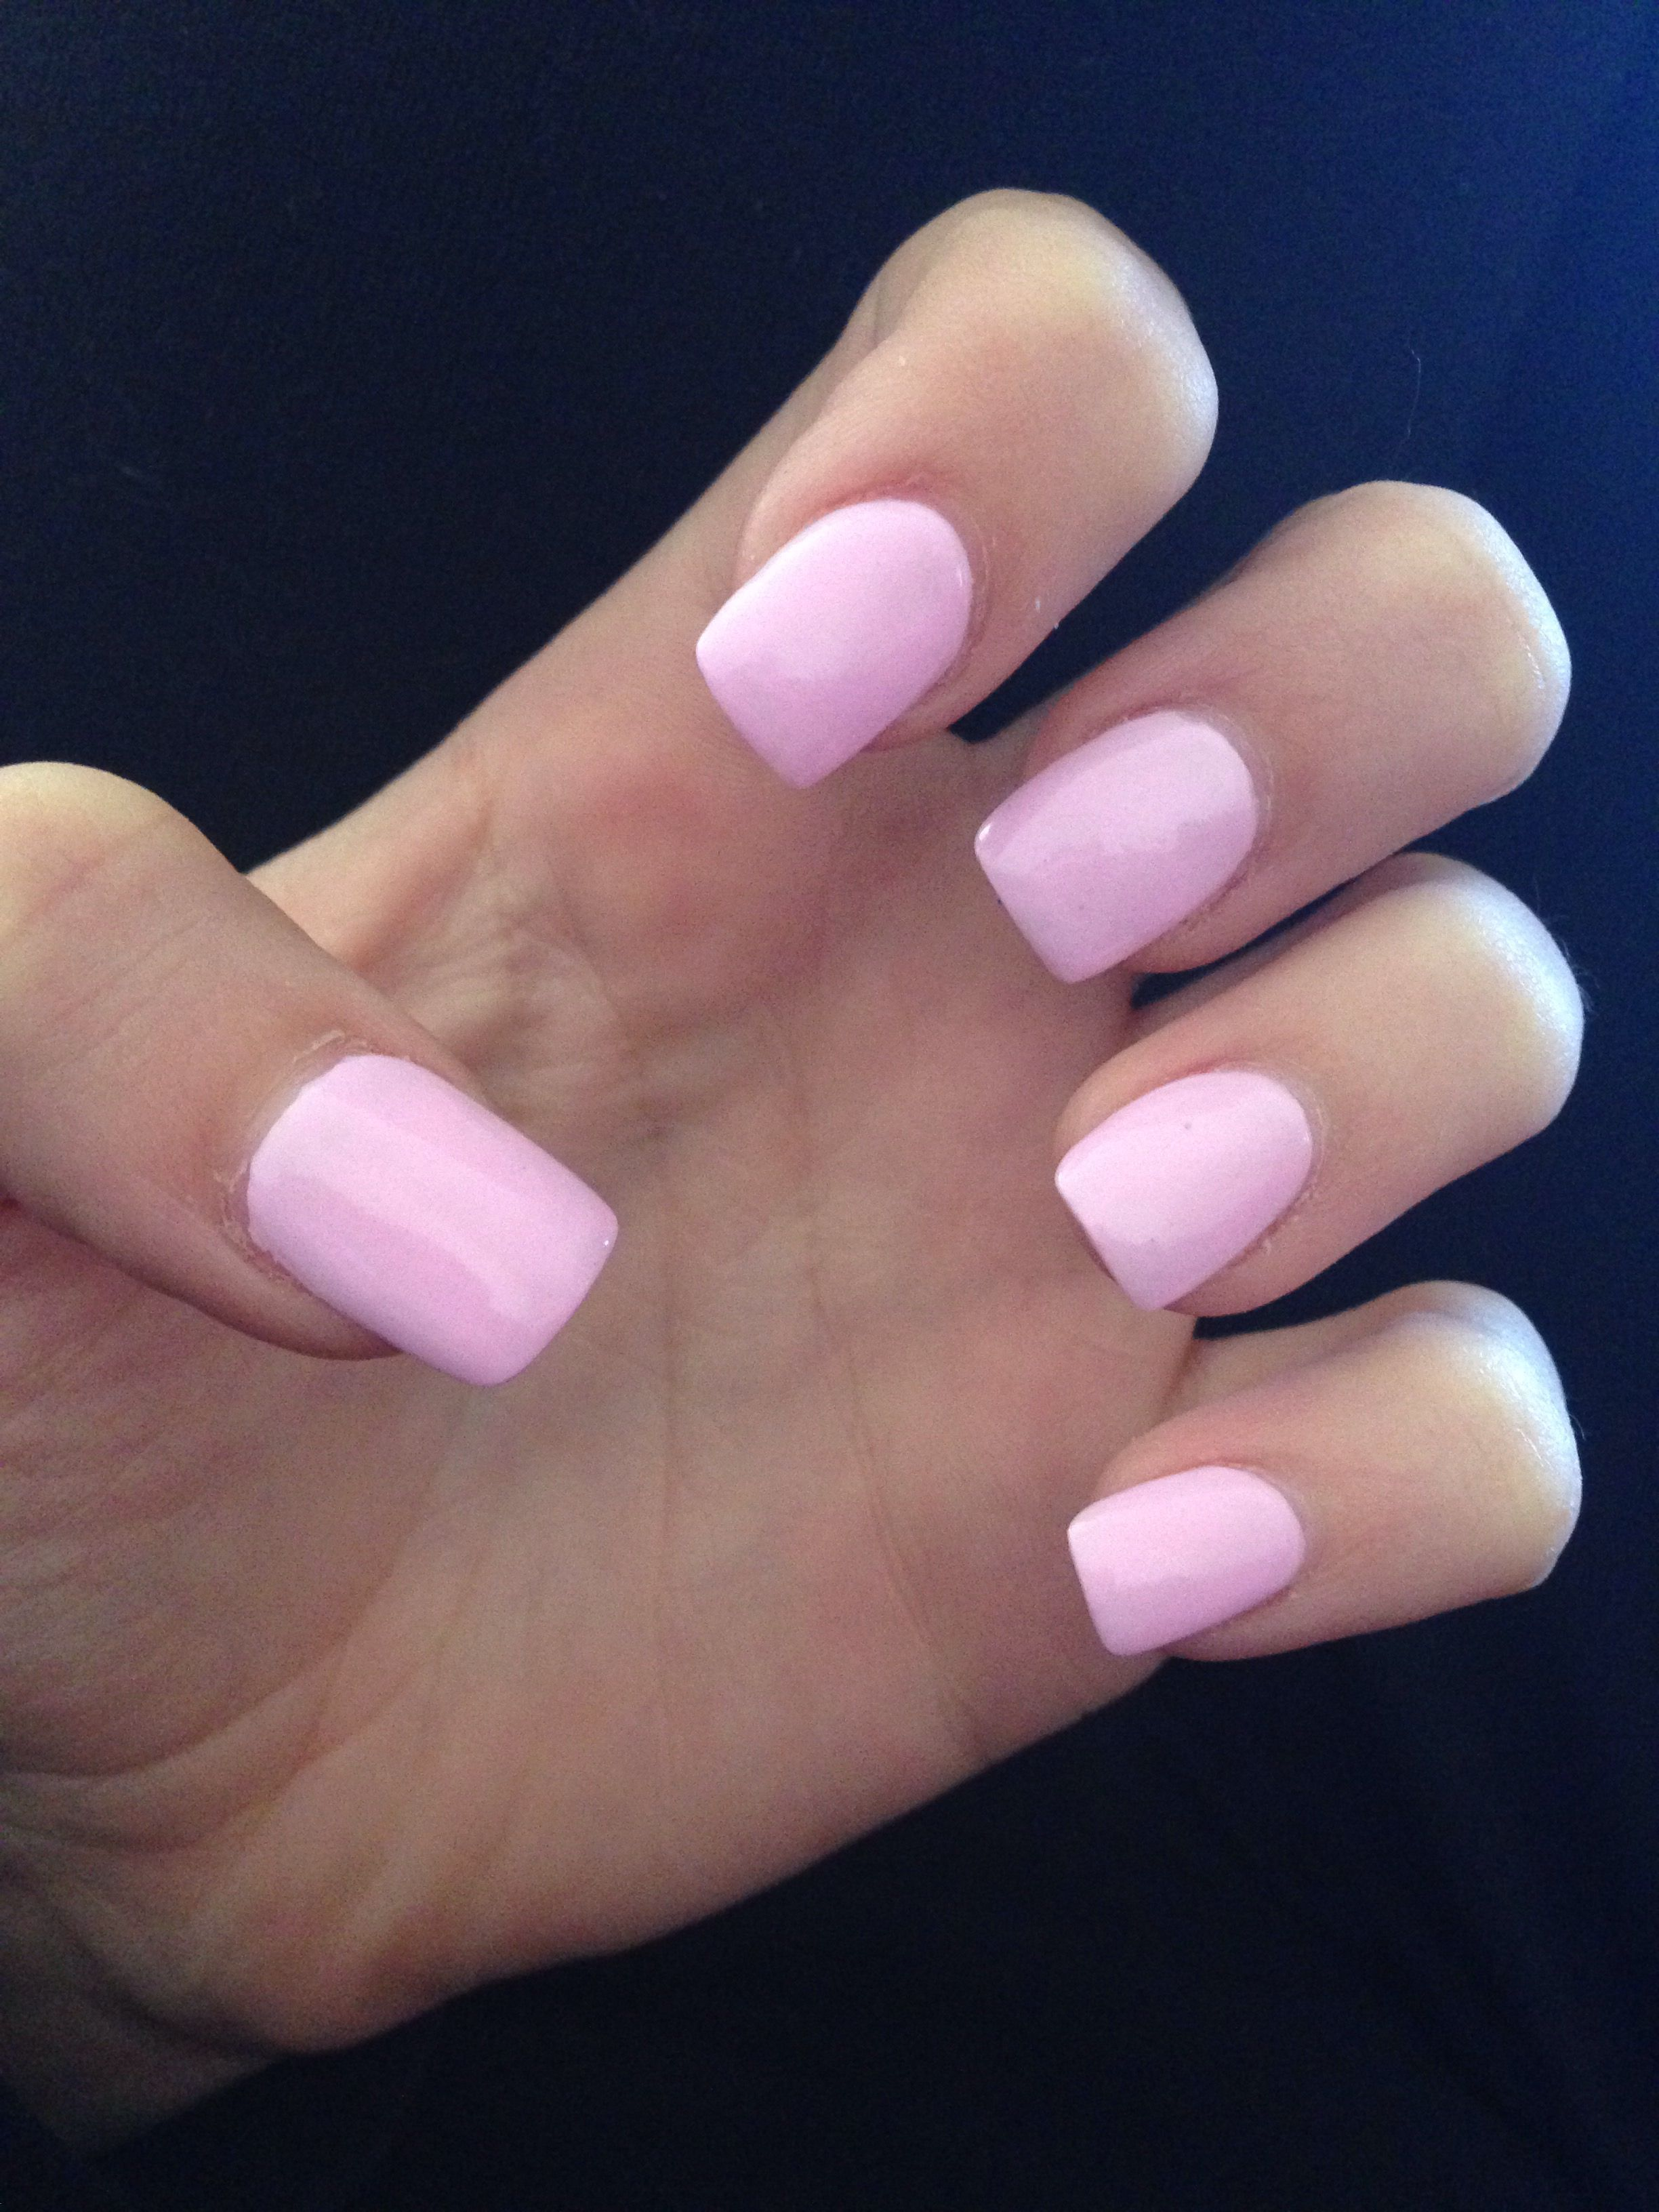 Pin By Jose On Pastel Nails In 2020 Light Pink Acrylic Nails Pink Acrylic Nails Square Acrylic Nails